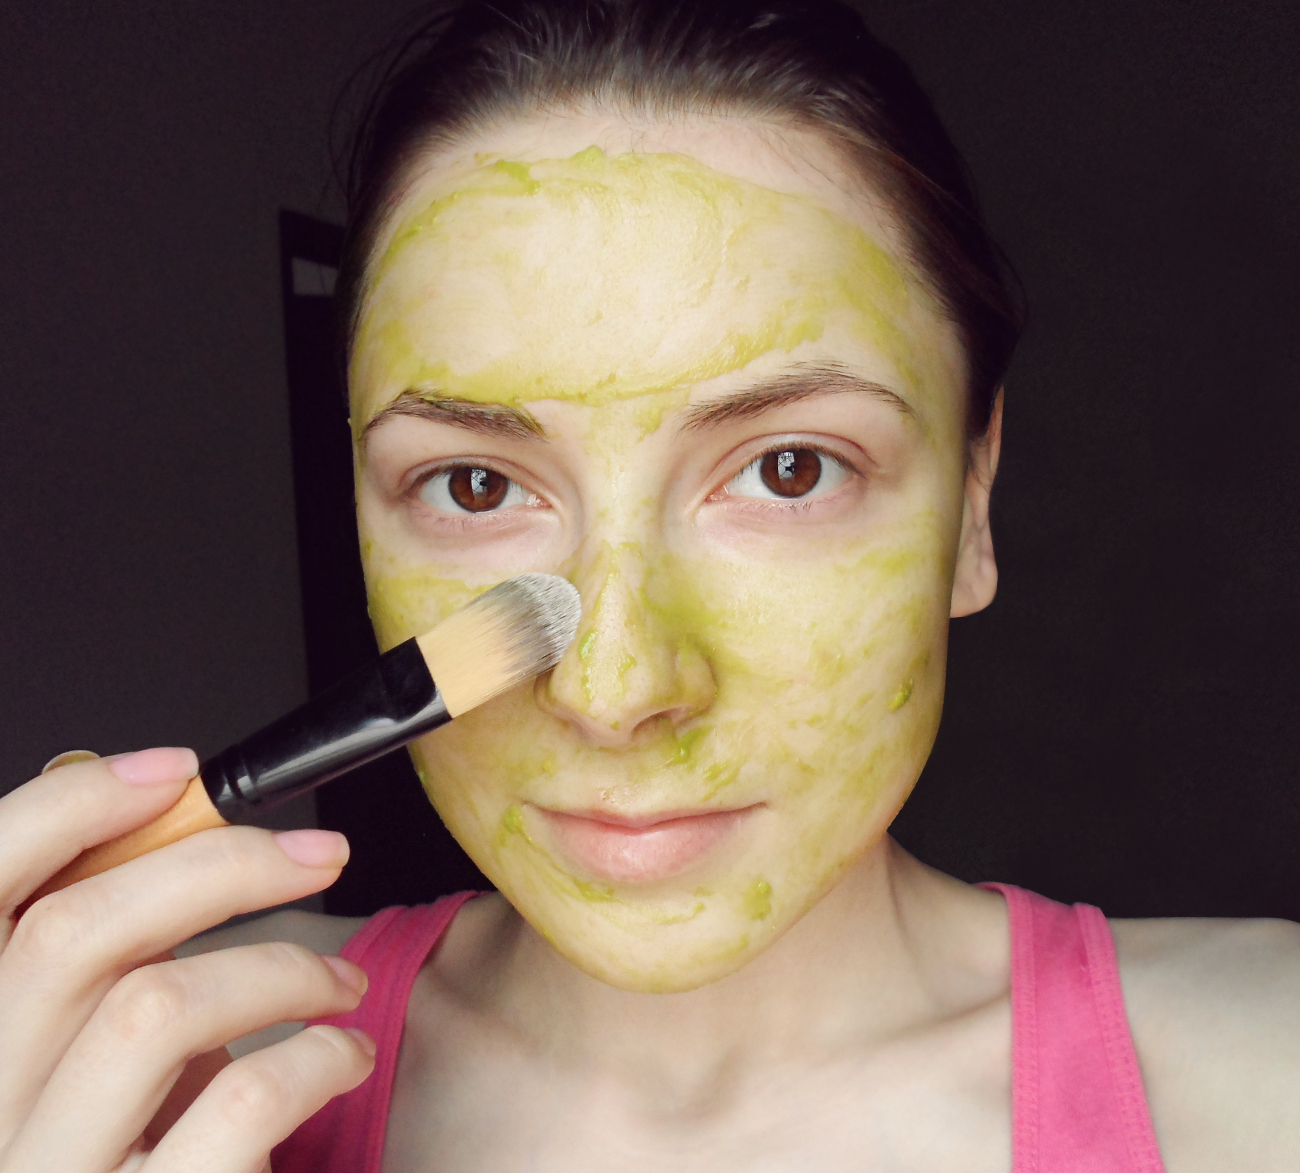 facial skin care homemade recipes masks fruit masks all skin types DIY at home liz breygel blogger